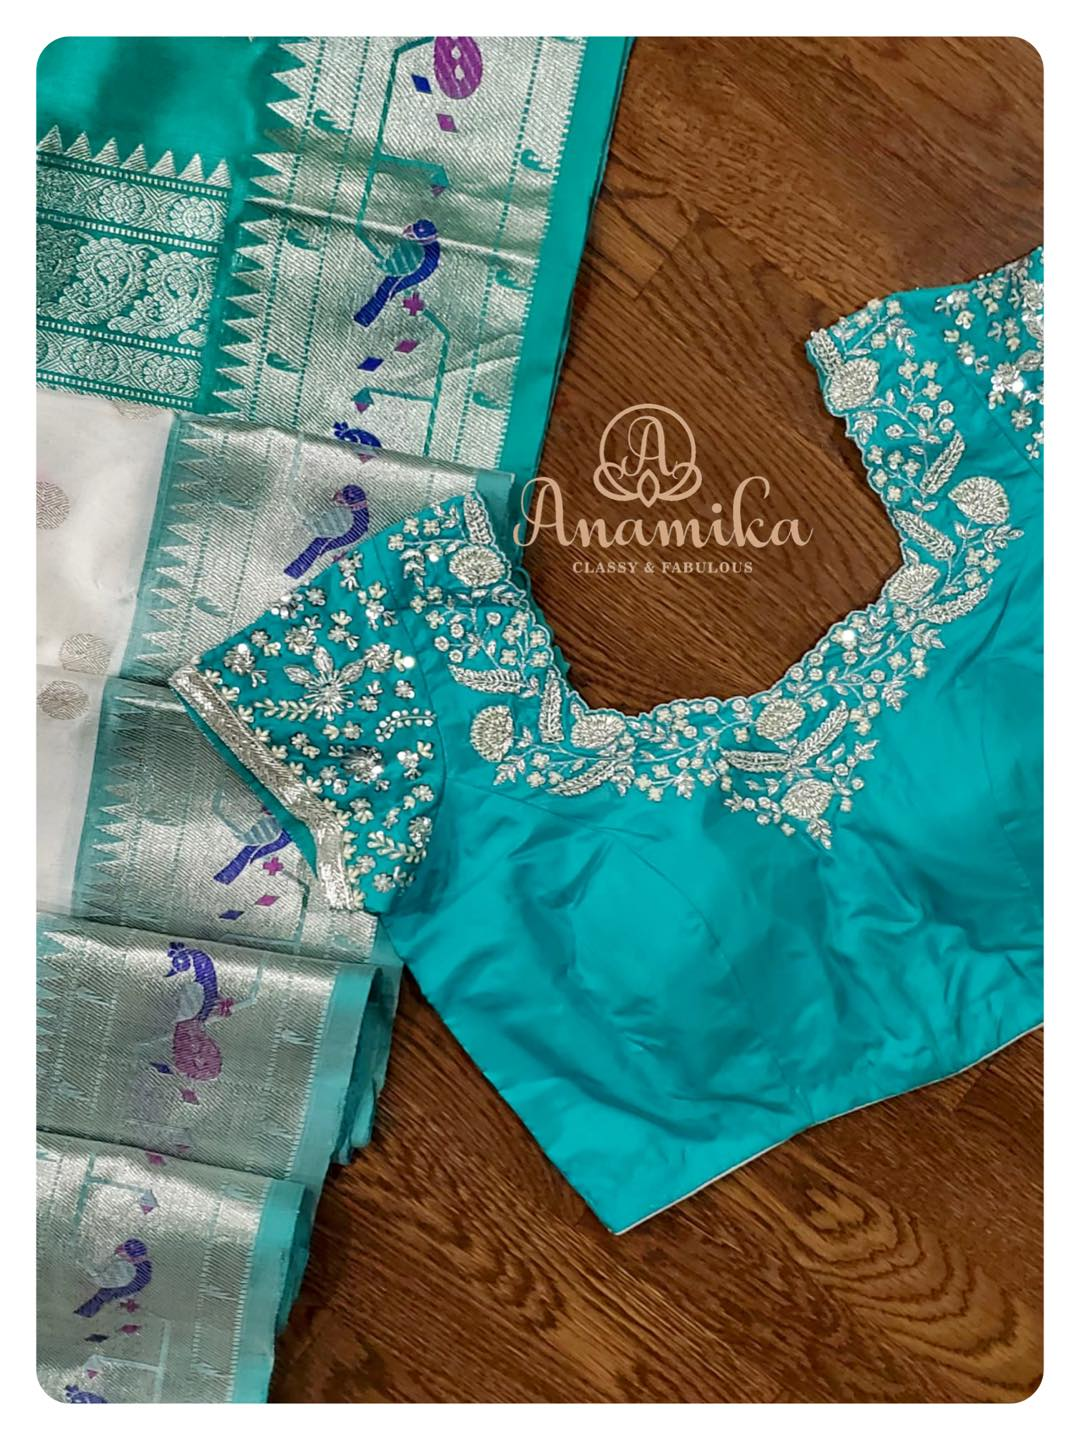 Let's try something unique in a silk saree ...  A white venkatagiri pattu saree with polka dots and a woven paithani border is so unique and classy.. that its sure to grab your attention !  Paired with a contrast teal green blouse with silver work ... this is something different!